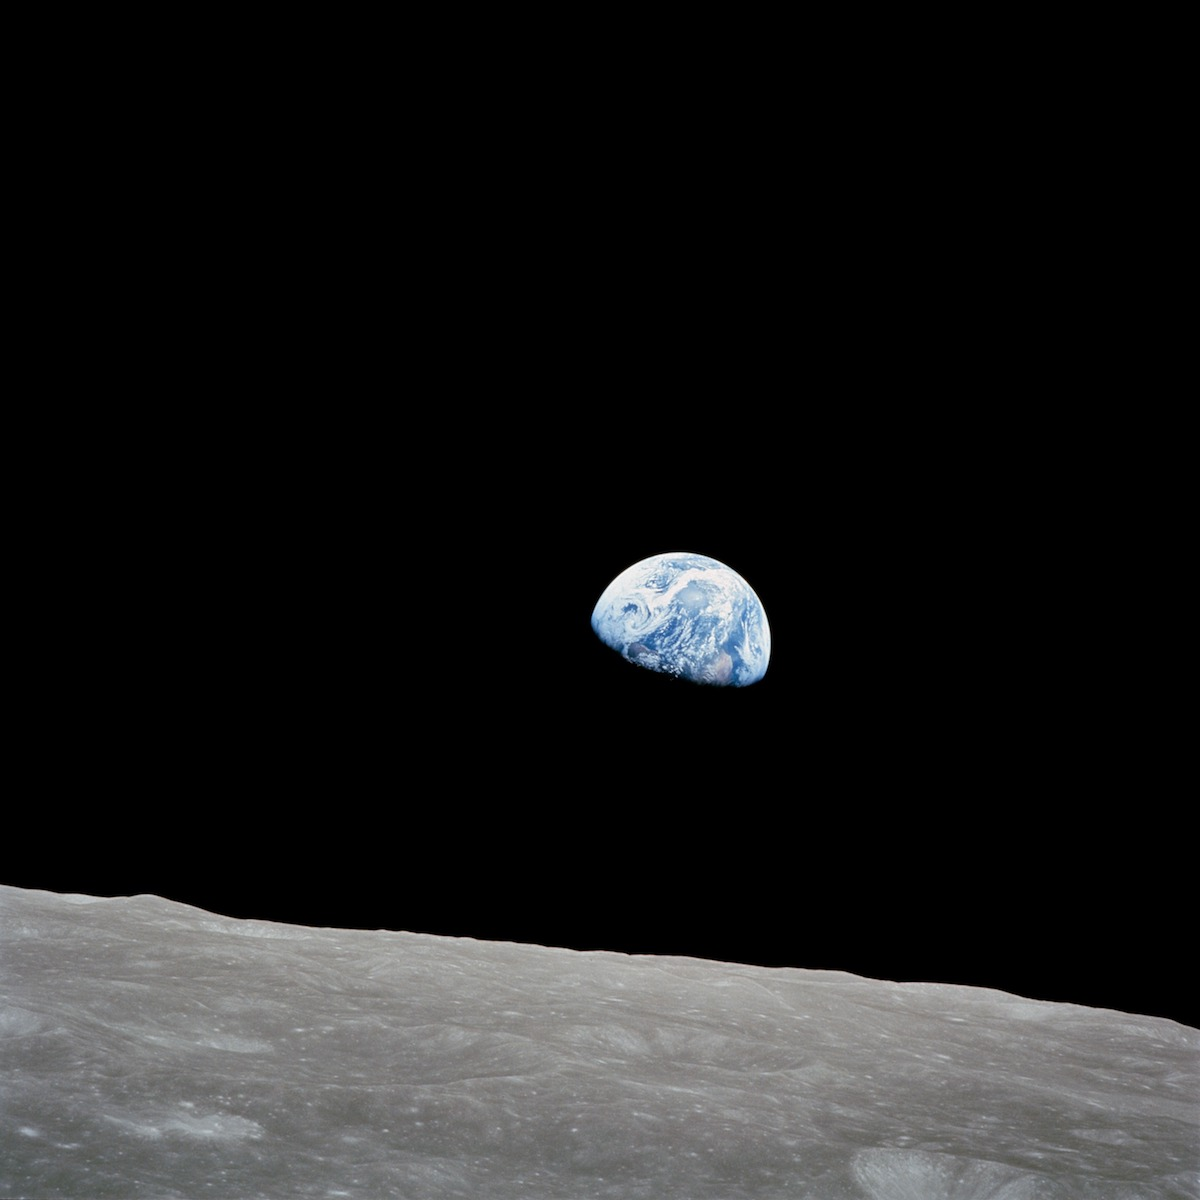 blue Earth against a black sky above the barren lunar surface